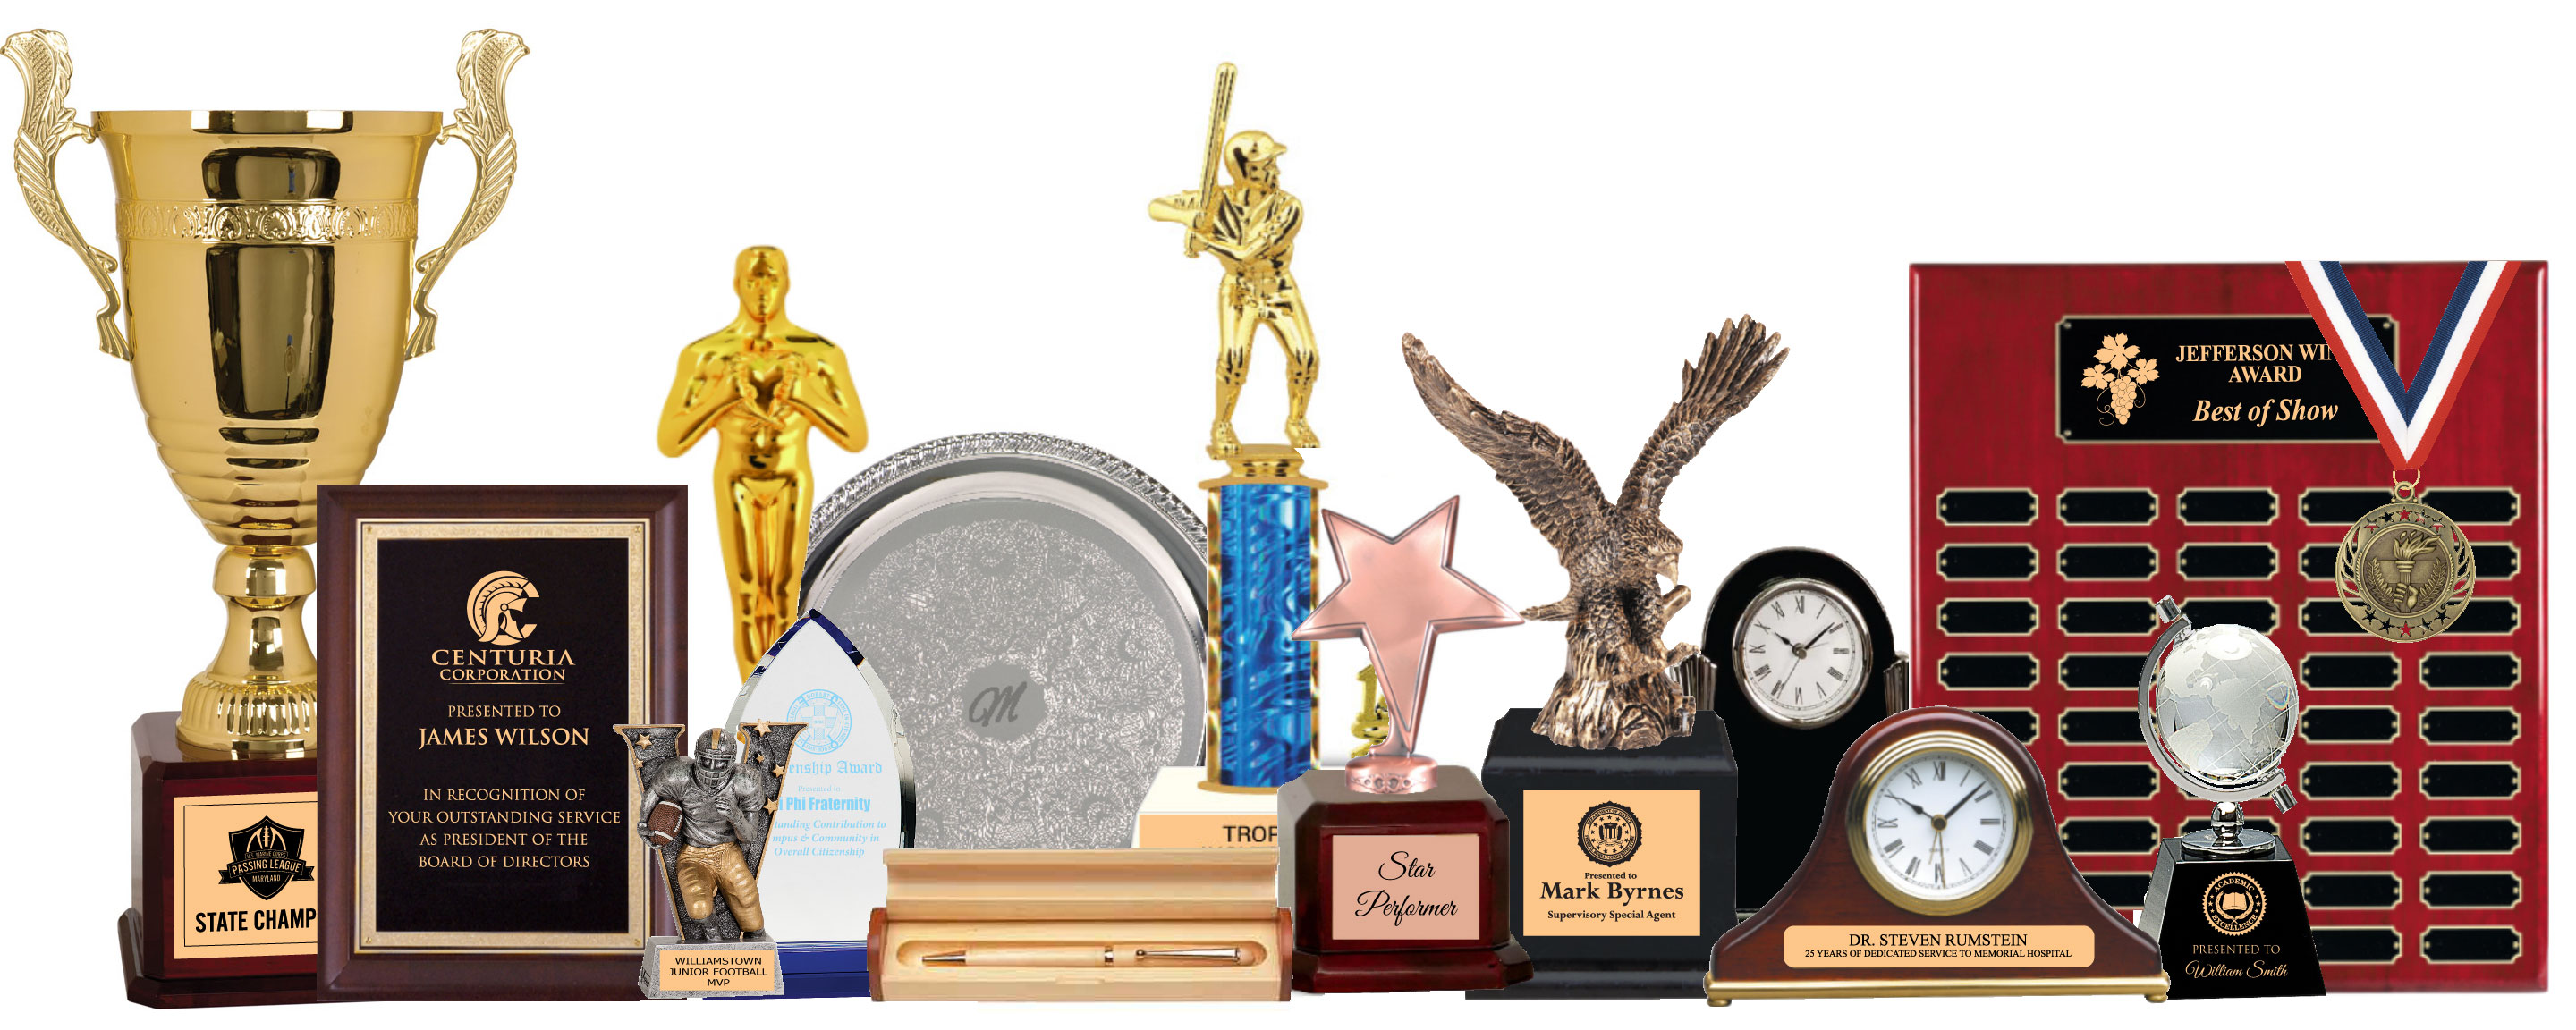 Get Engraved Plaques and Trophies Properly For Any Award